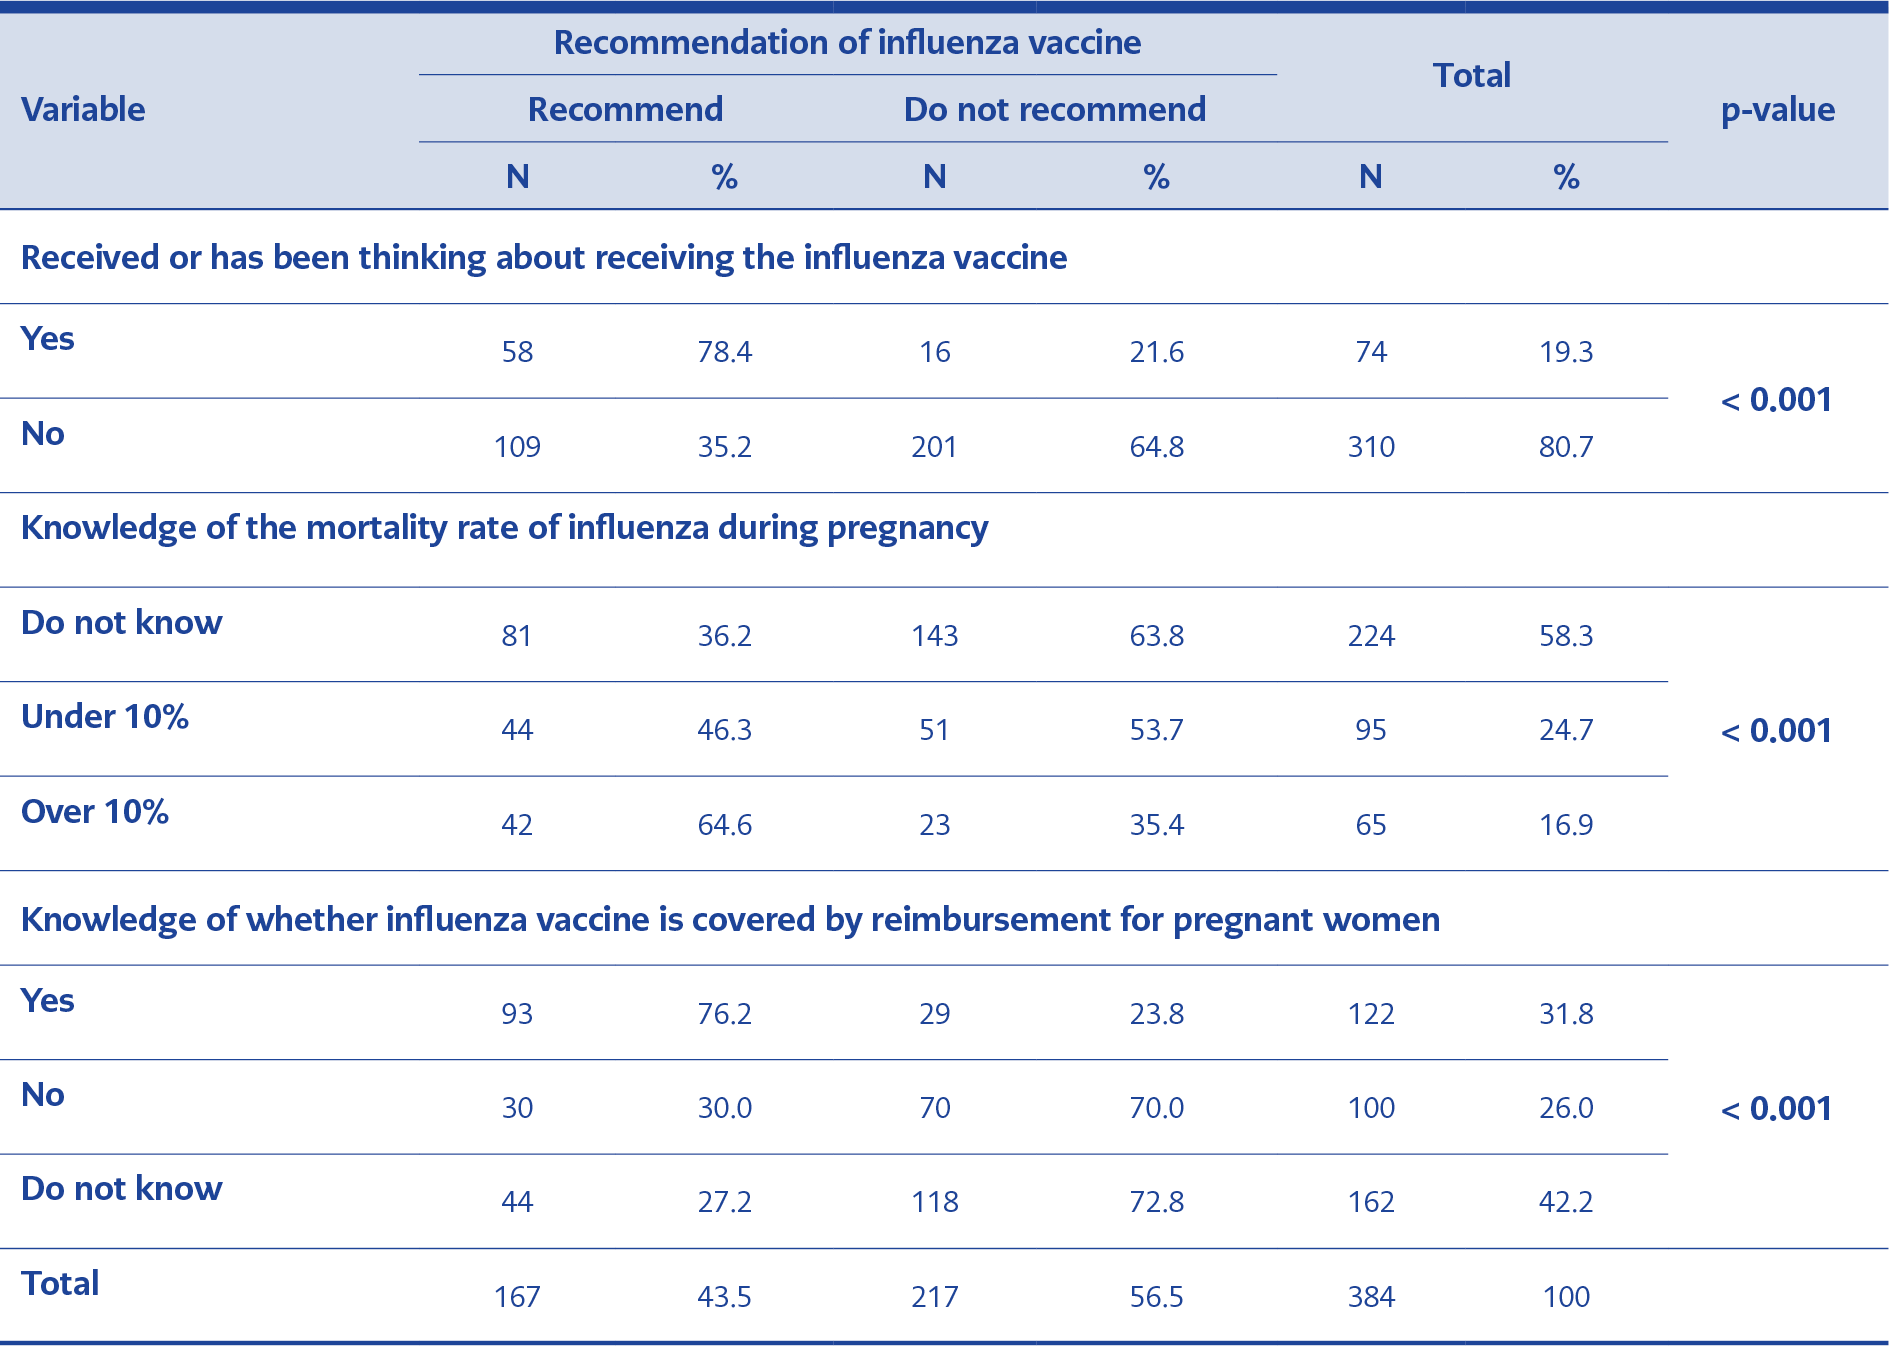 <strong>Table 3.</strong> Status of the respondents regarding the recommendation of influenza vaccine to pregnant women according to the influenza vaccine status of the respondent, influenza mortality rate and influenza vaccine reimbursement